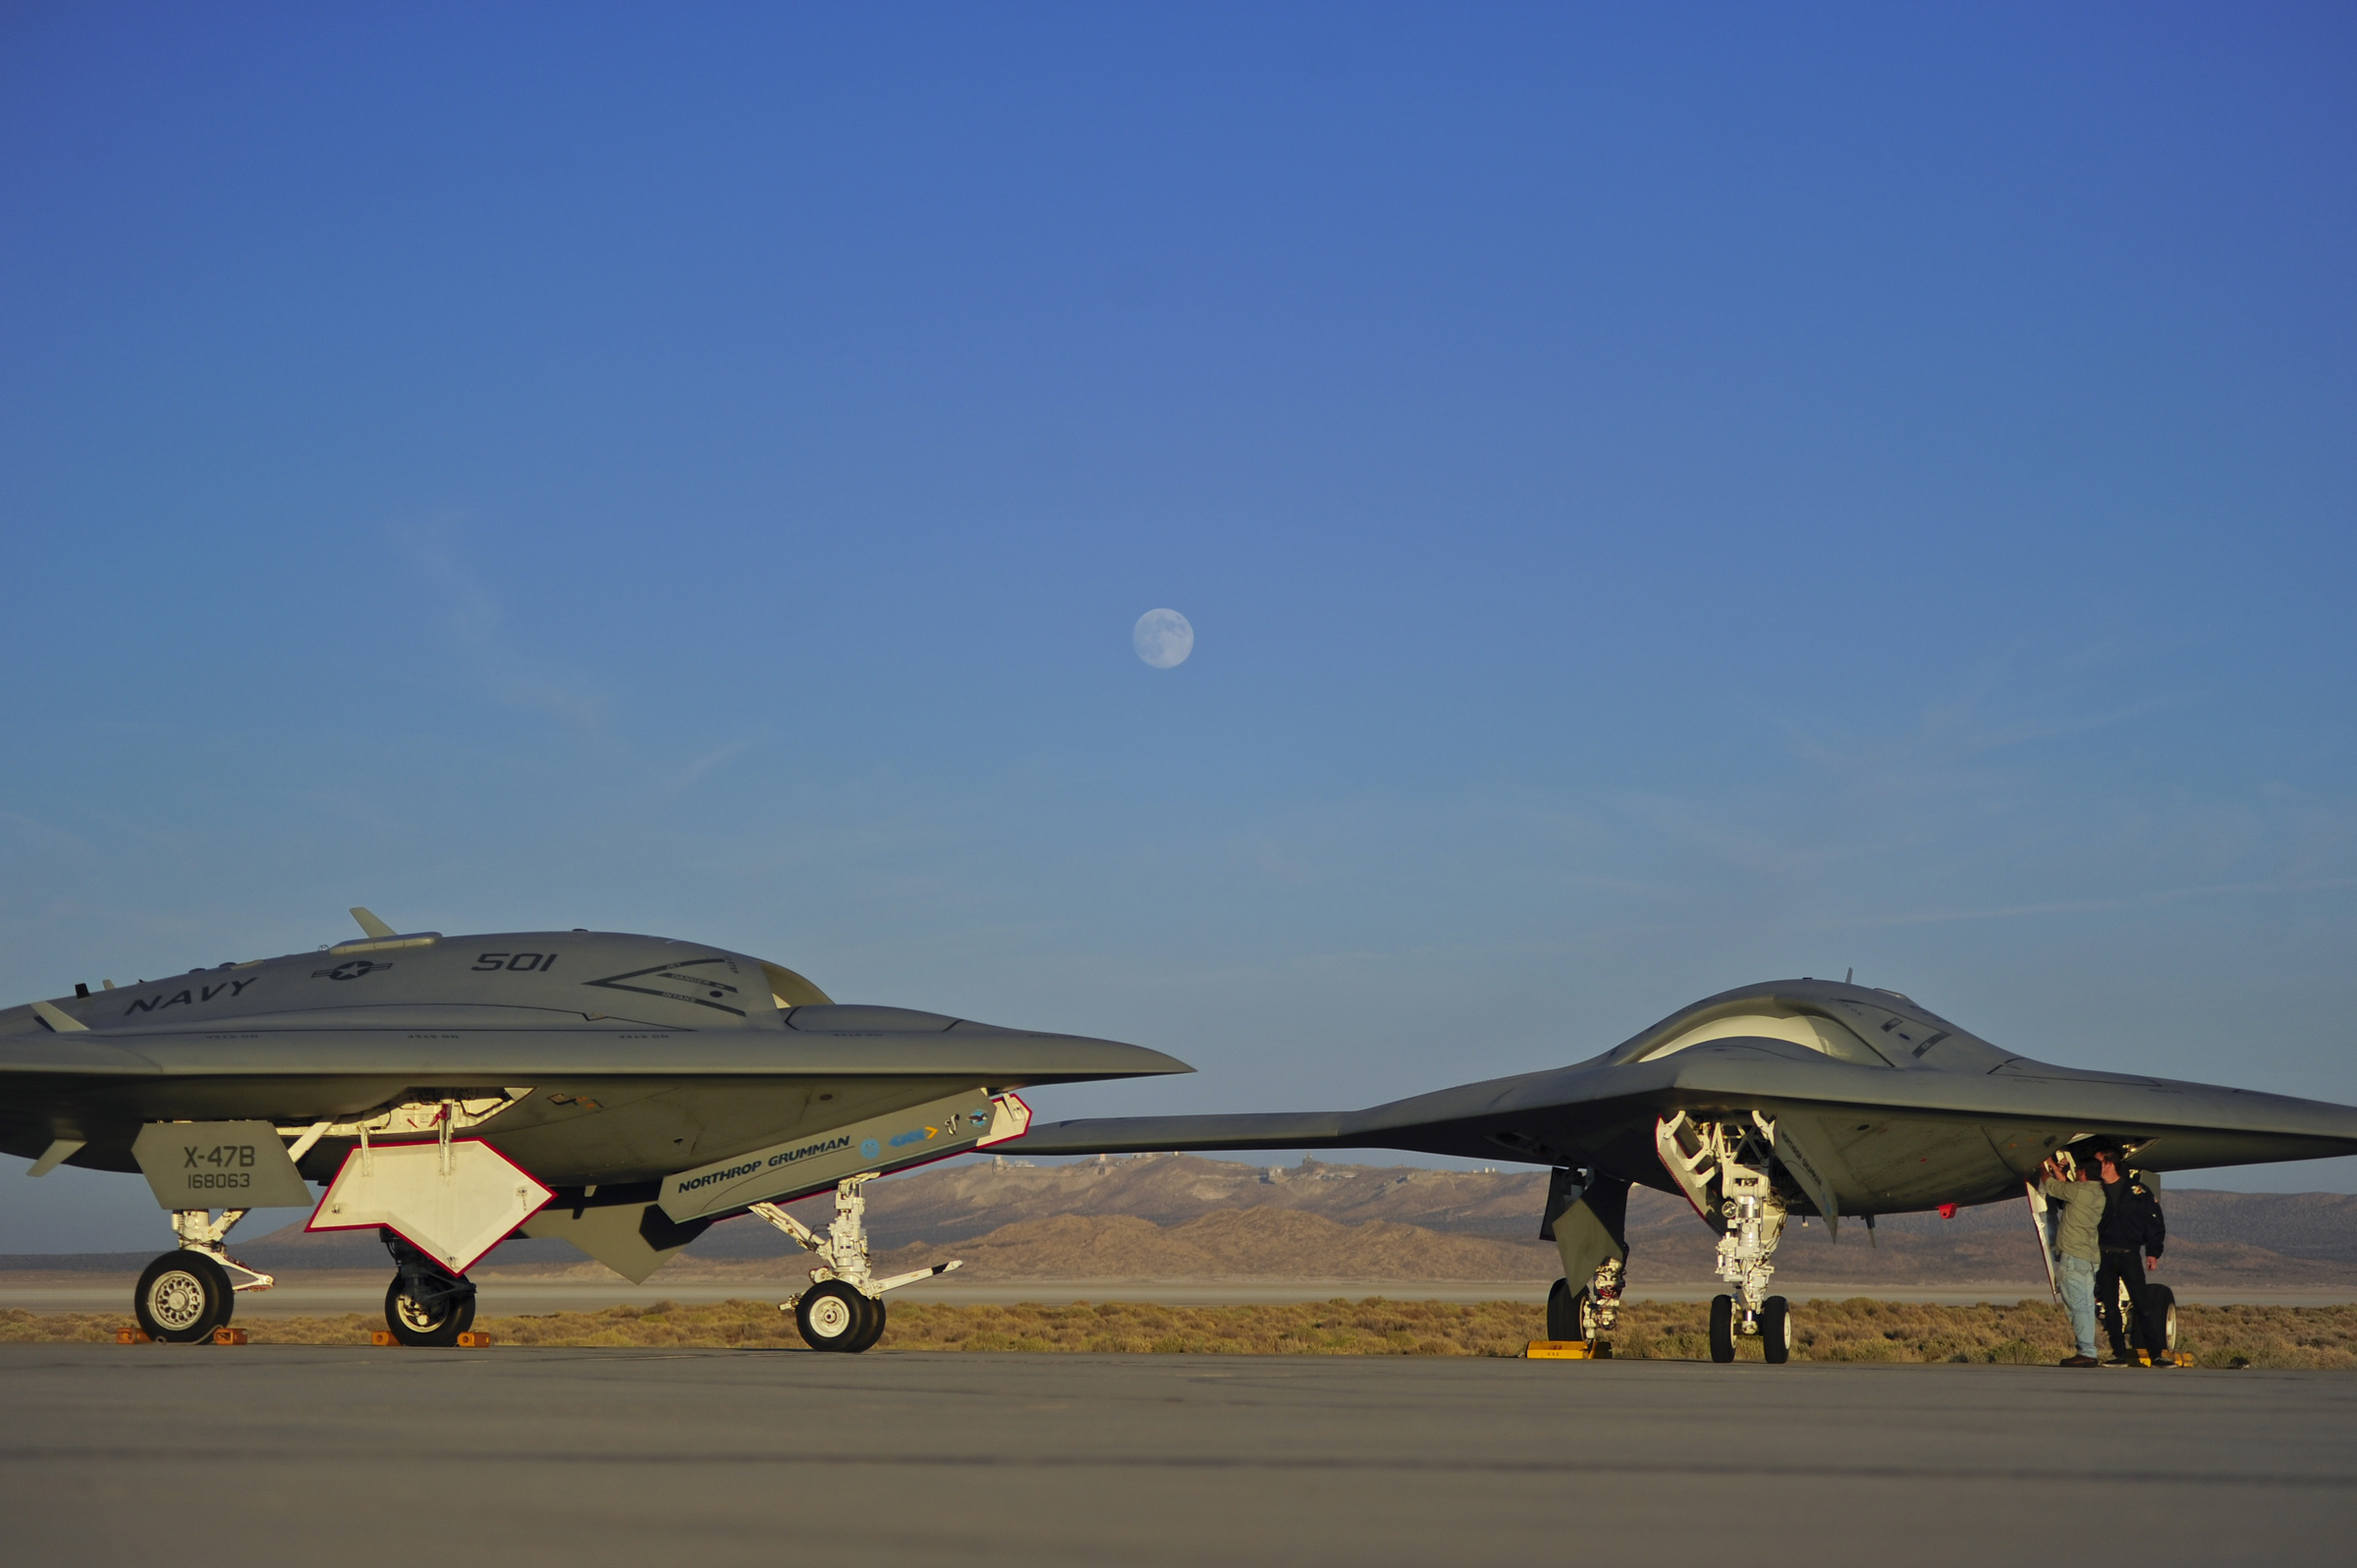 X-47B drones at Edwards AFB